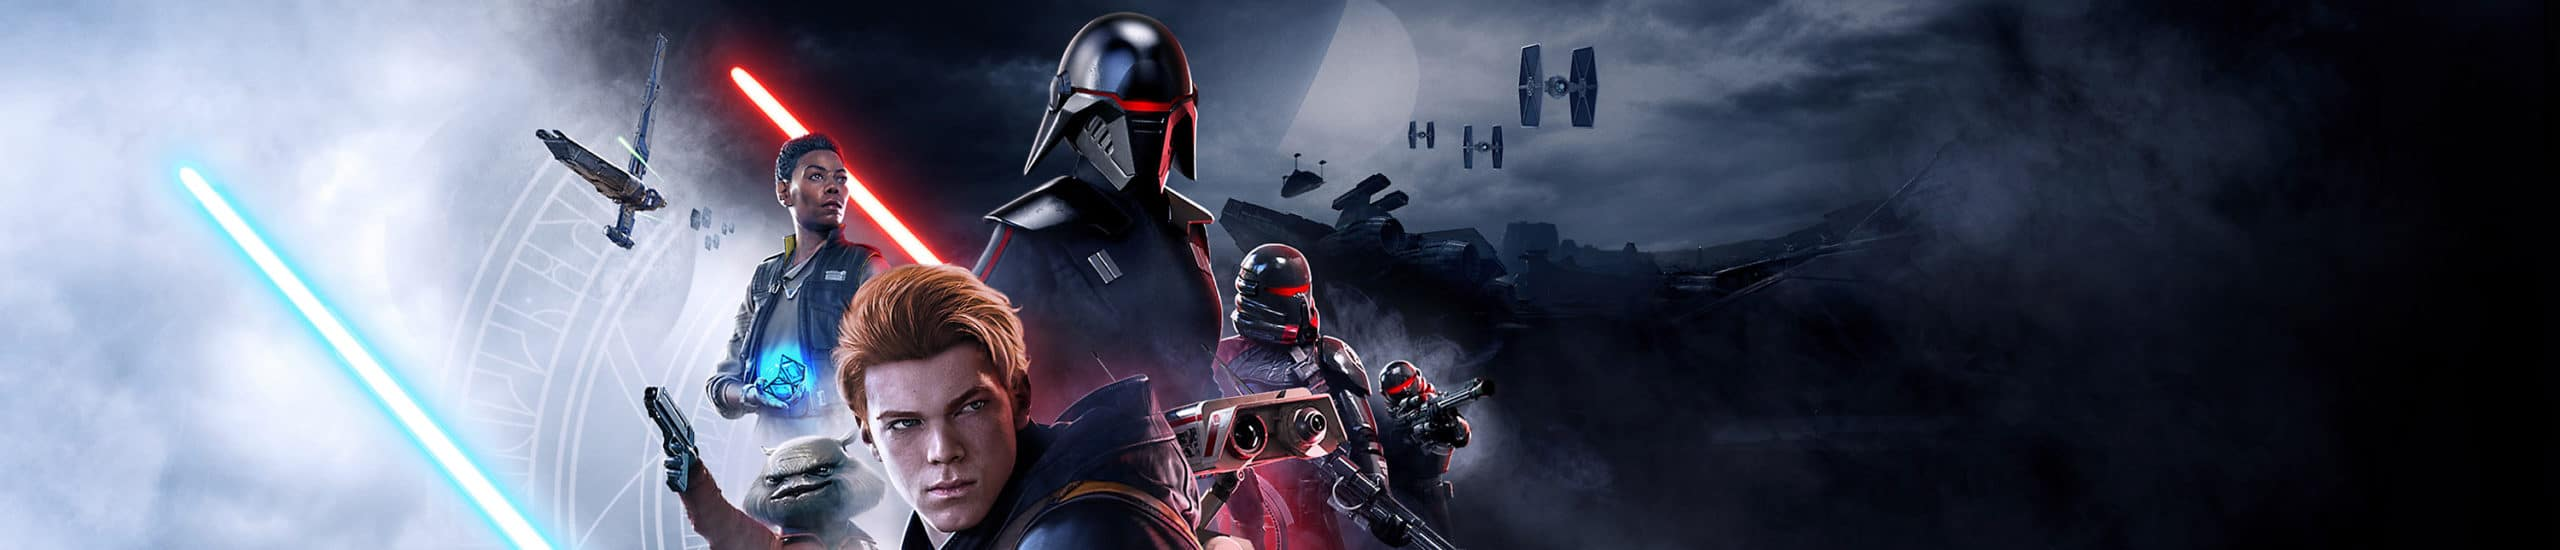 VIRTUOS SUPPORTED RESPAWN ENTERTAINMENT ON GAMEPLAY, LEVEL DESIGN AND ART FOR STAR WARS JEDI: FALLEN ORDER